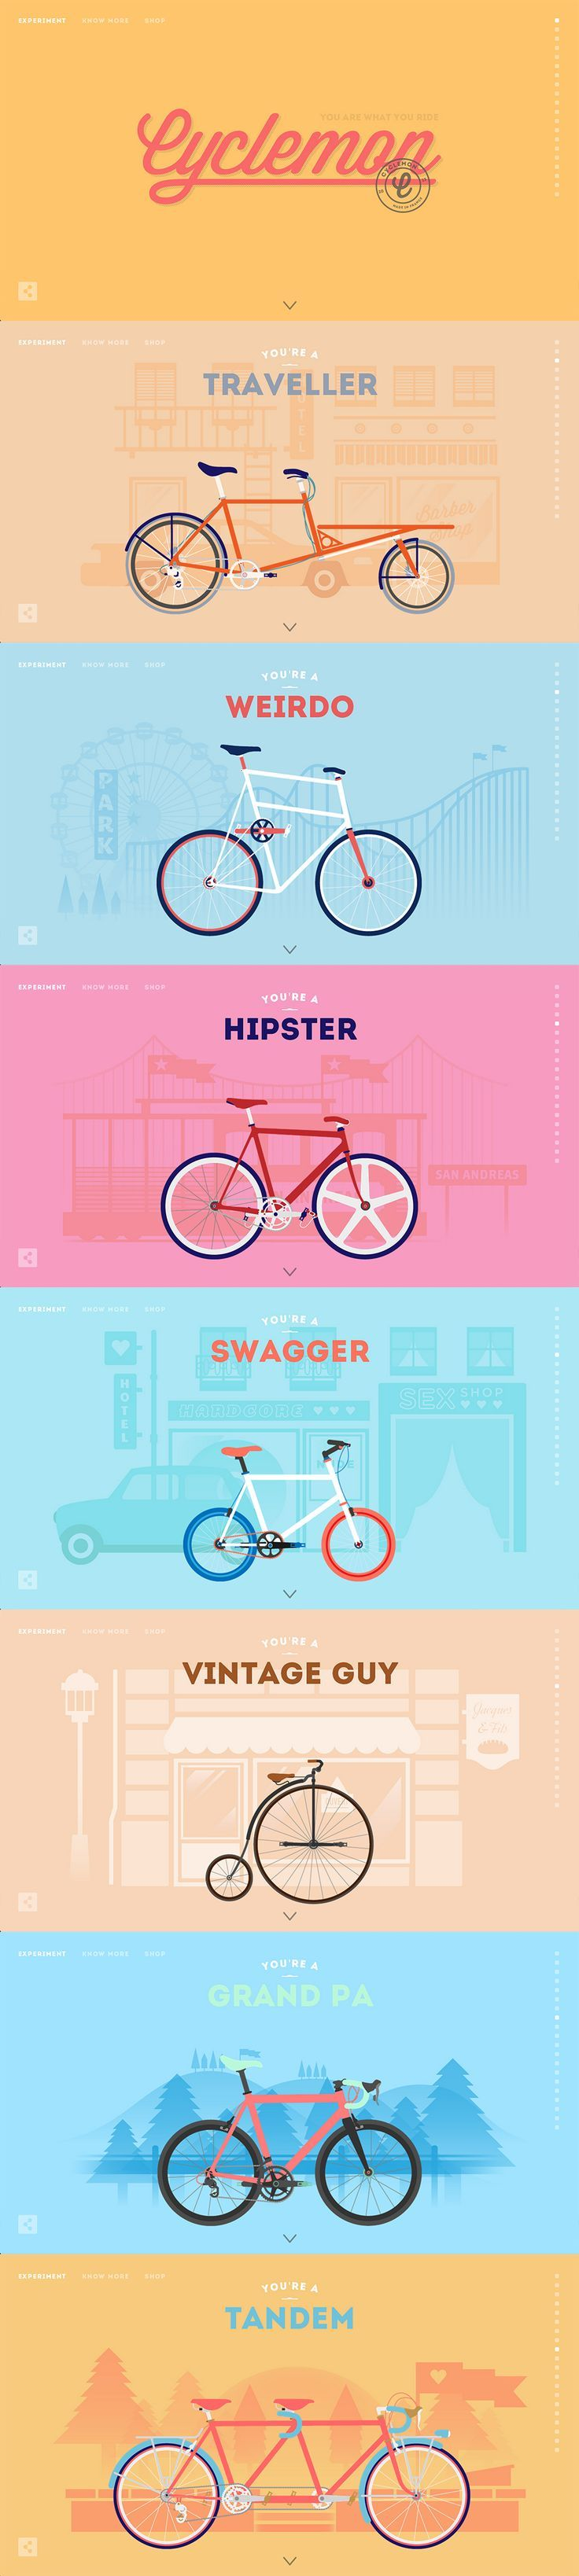 421 best bikes images on Pinterest   Bicycle art, Cycling tours and ...